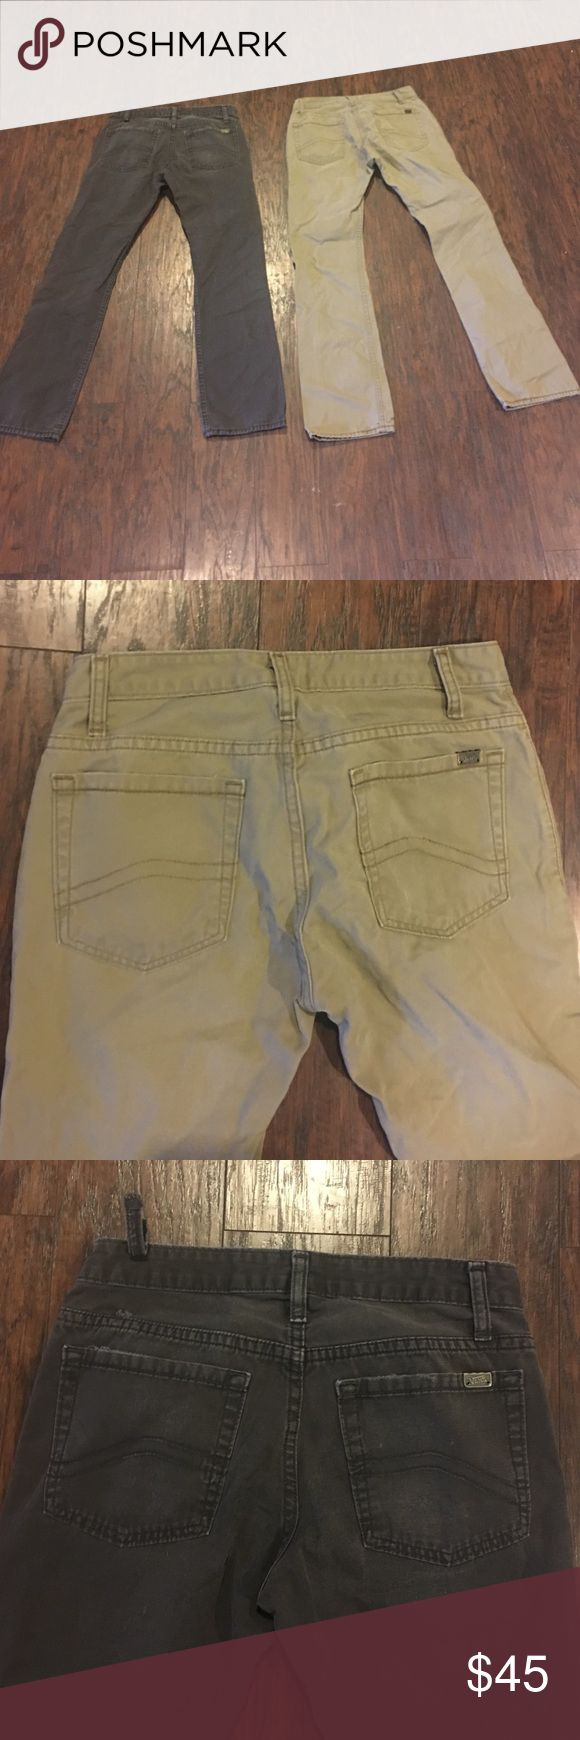 "Lot 2 pairs of Vans men's pants Sz 28 Lot 2 pairs of Vans men's pants Sz 28 good condition light wear grey pair has one belt loop detached from one side Inseam 28"" khaki pair inseam 29"" sold as lot only Vans Pants Chinos & Khakis"